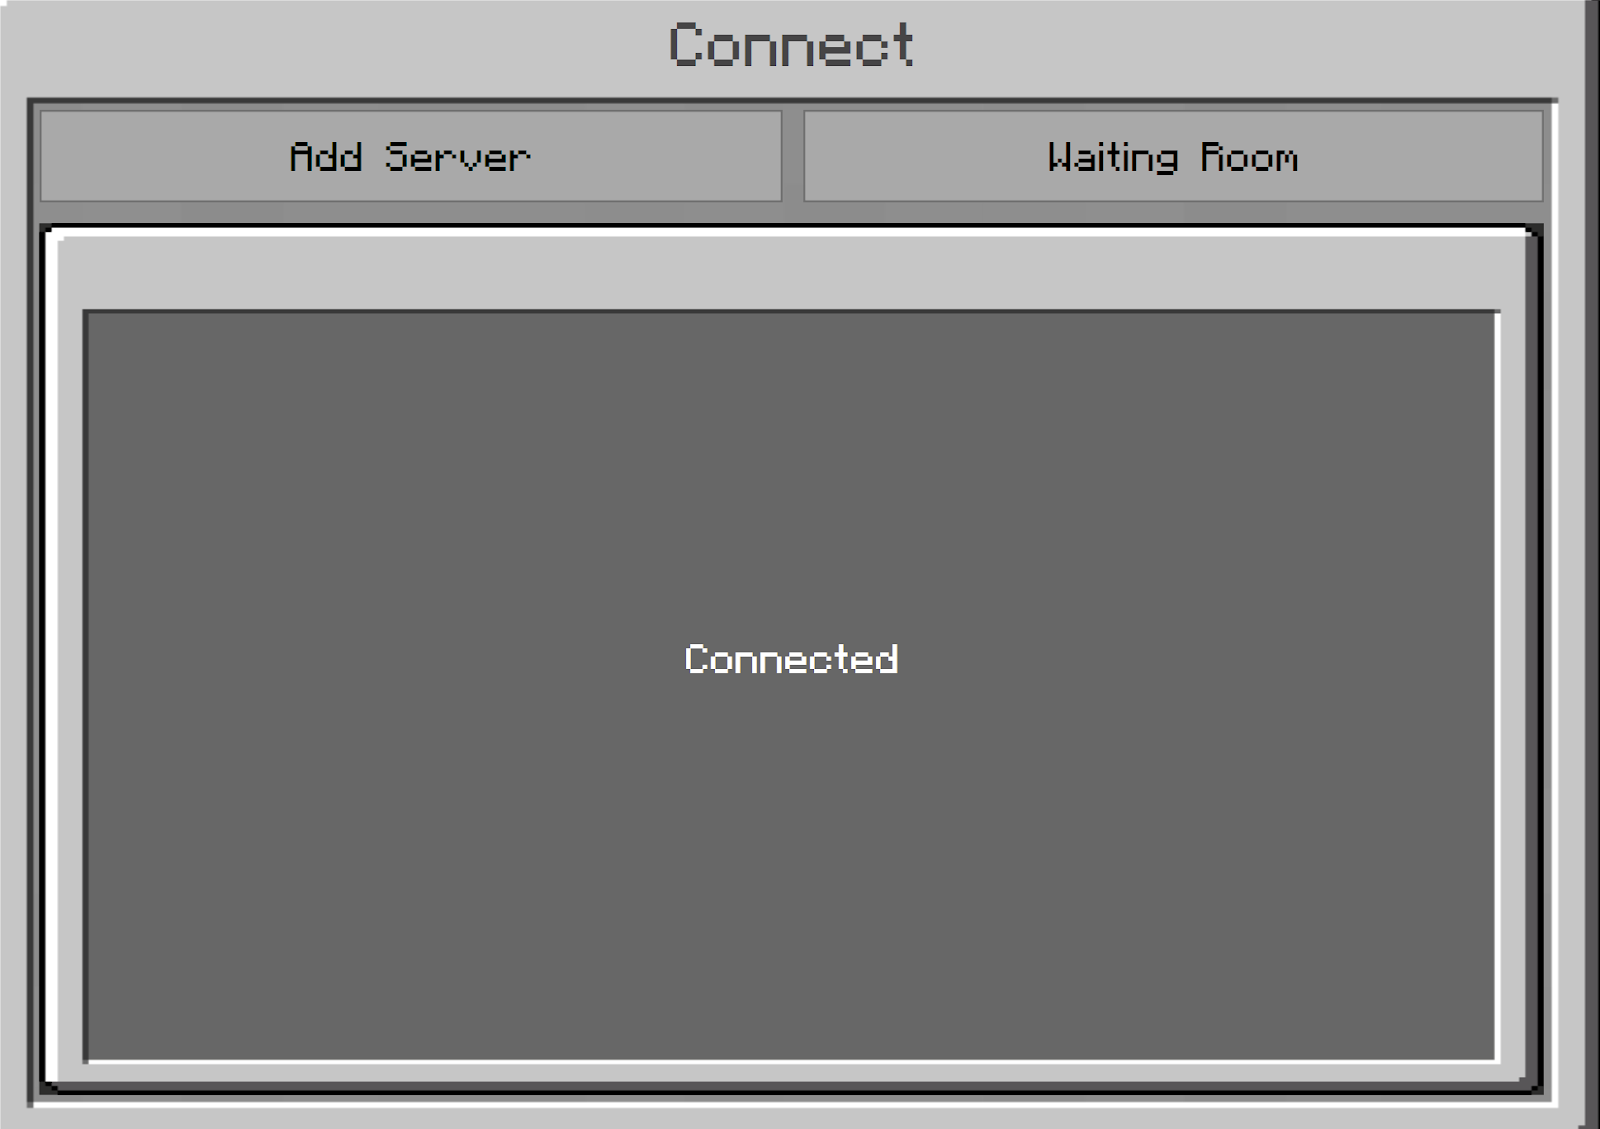 fidd Server  Connect  Waiting Room  Connected